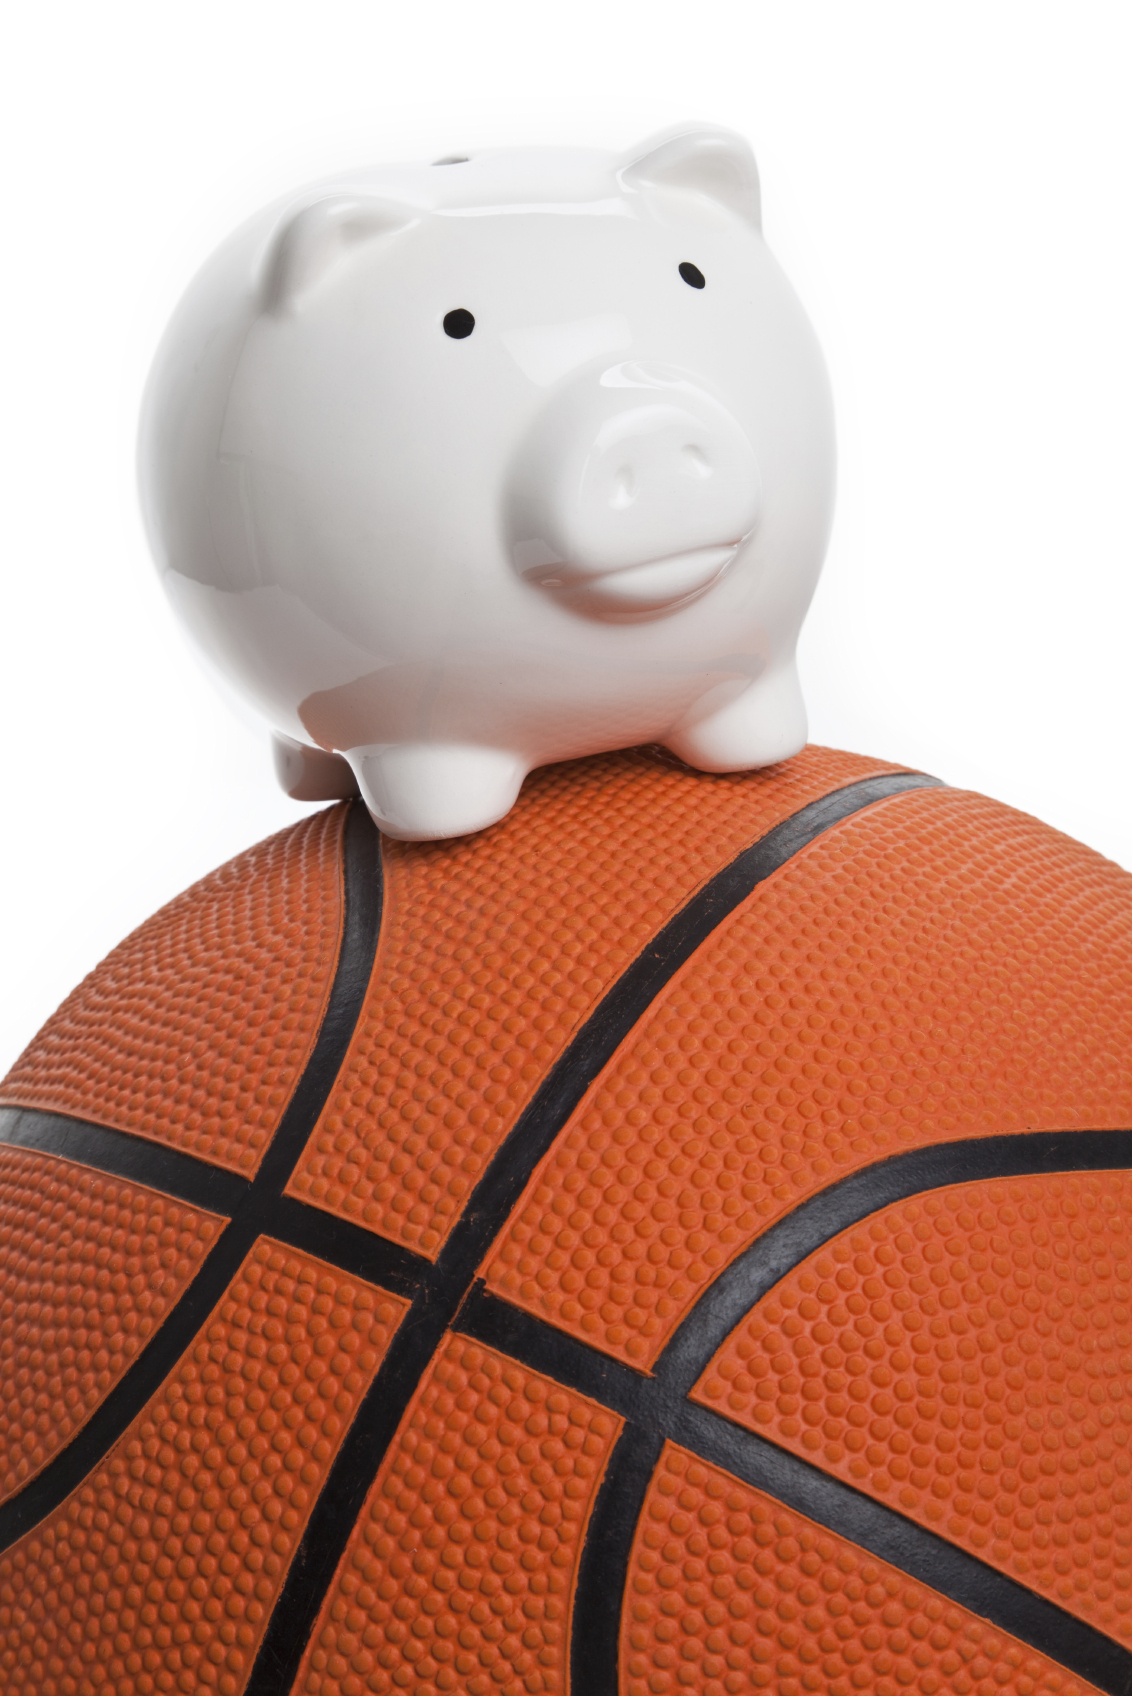 11 sports fundraising ideas for booster clubs